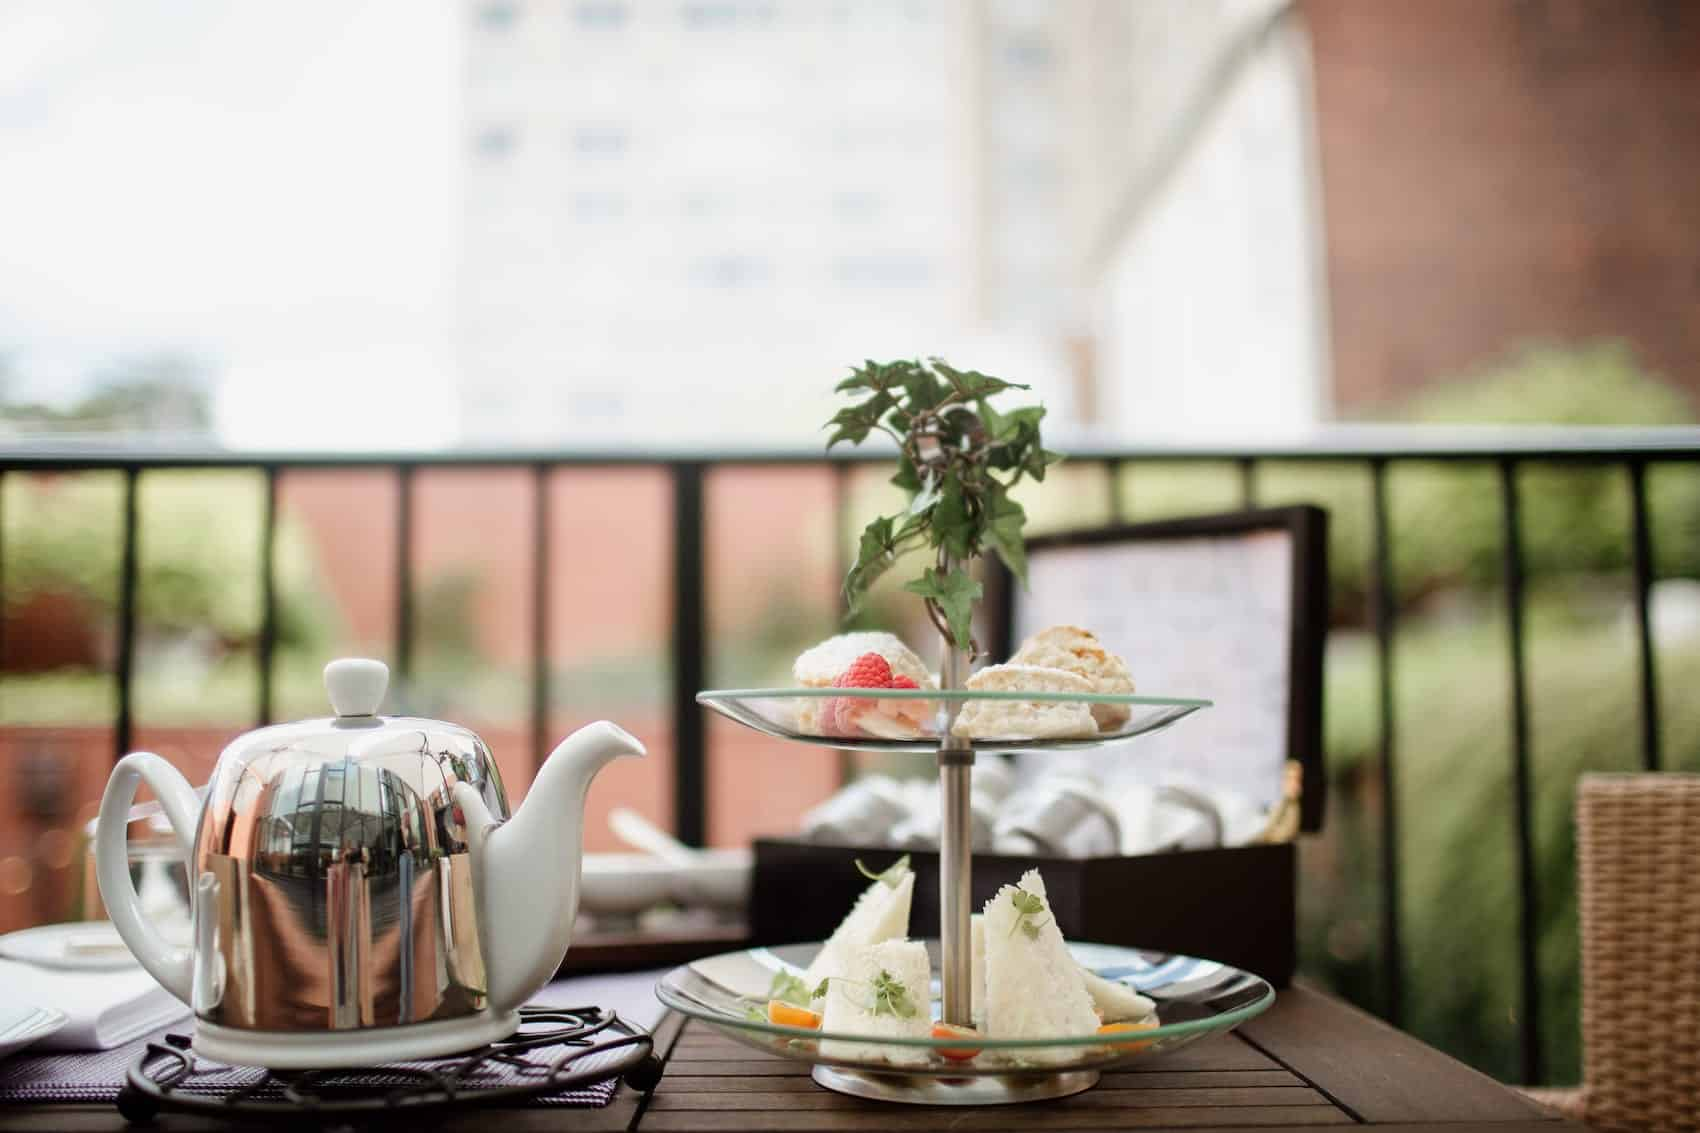 Teapot next to sandwiches on the terrace at The Ivy Hotel.